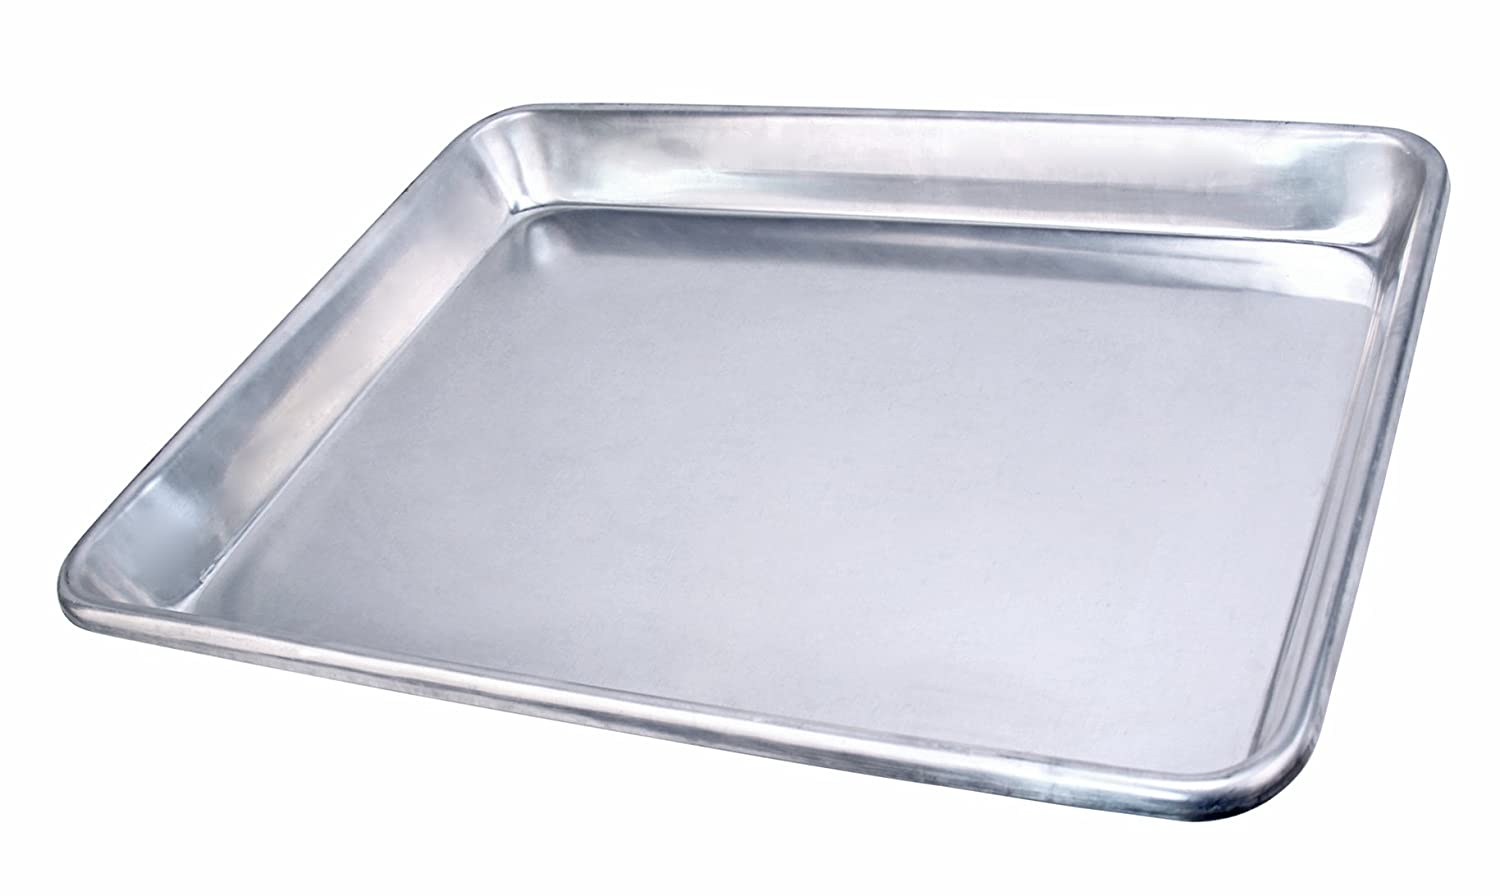 "New Star Foodservice 36800 Commercial-Grade 12-Gauge Aluminum Open Bead Sheet Pan/Bun Pan, 18"" L x 26"" W x 2"" H (Full Size) 